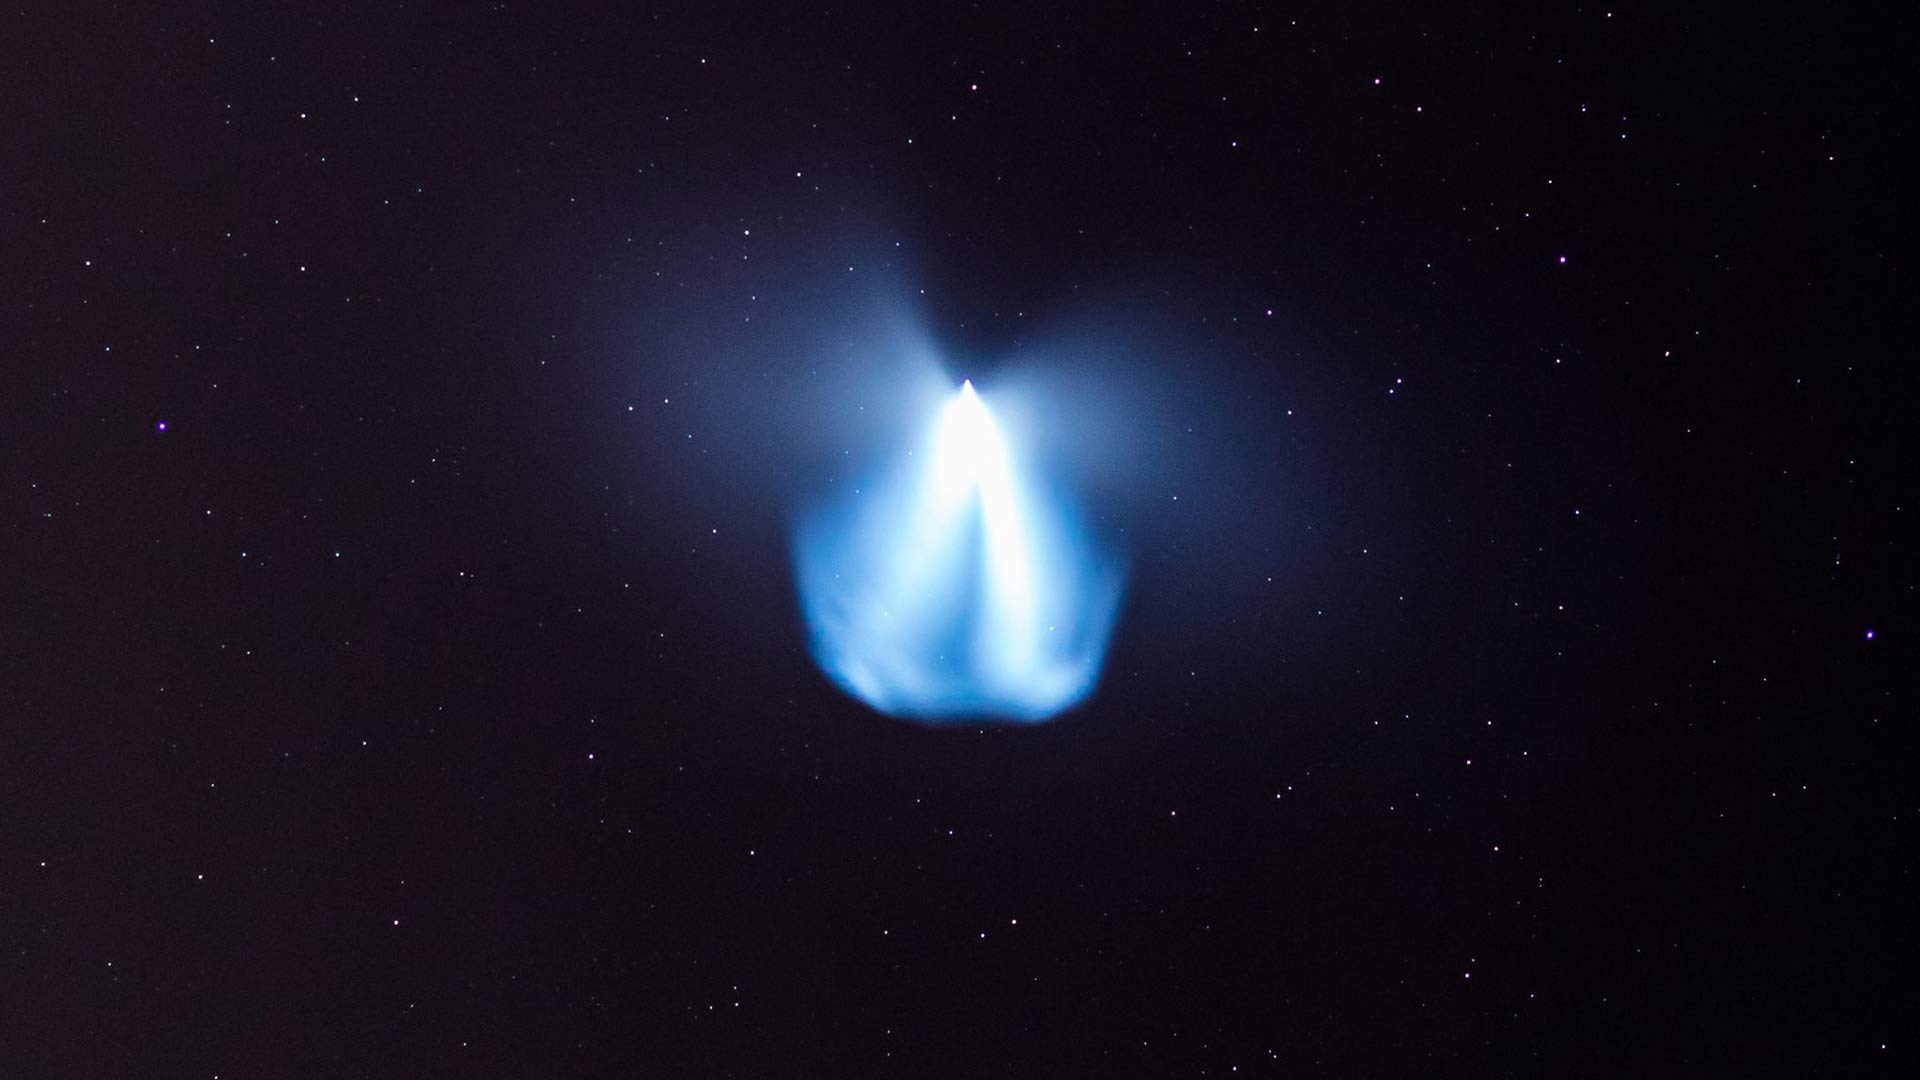 The plume from Falcon Heavy's second stage engine created an unusual show in the skies above the Southwest.